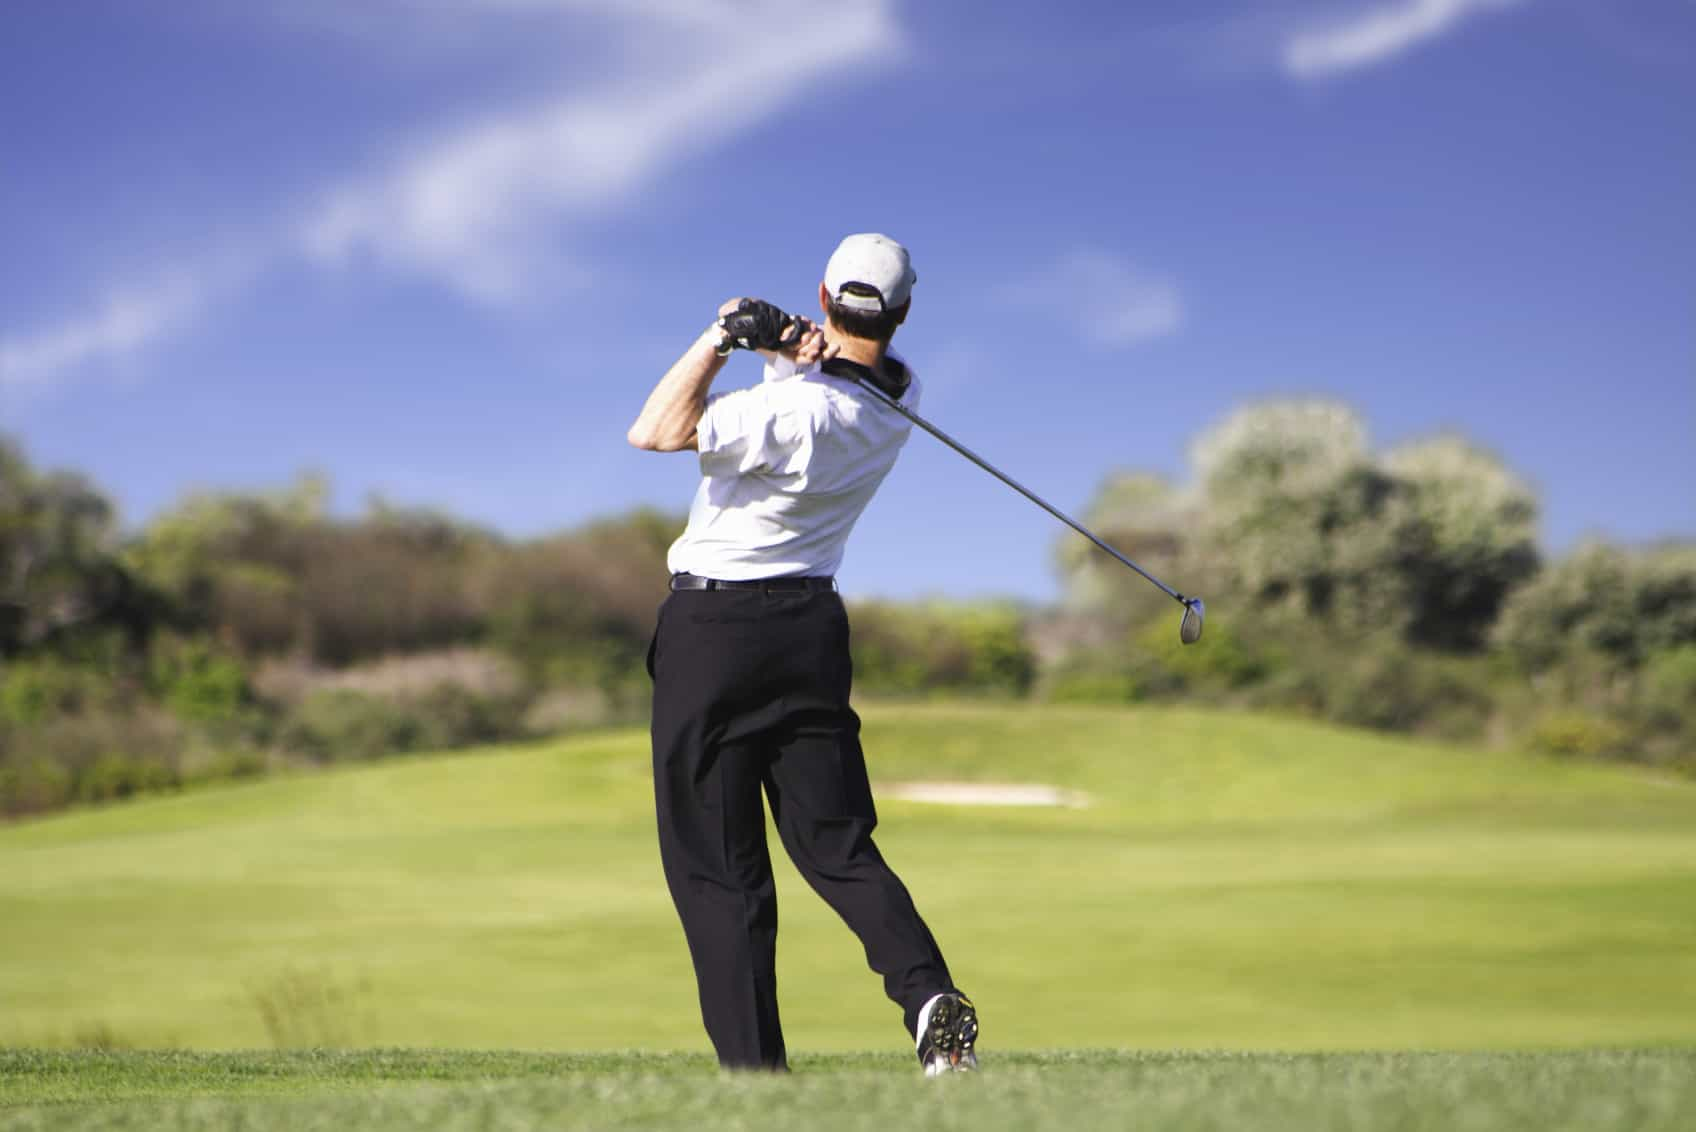 A Pilates Reformer Can Improve Your Golf Swing